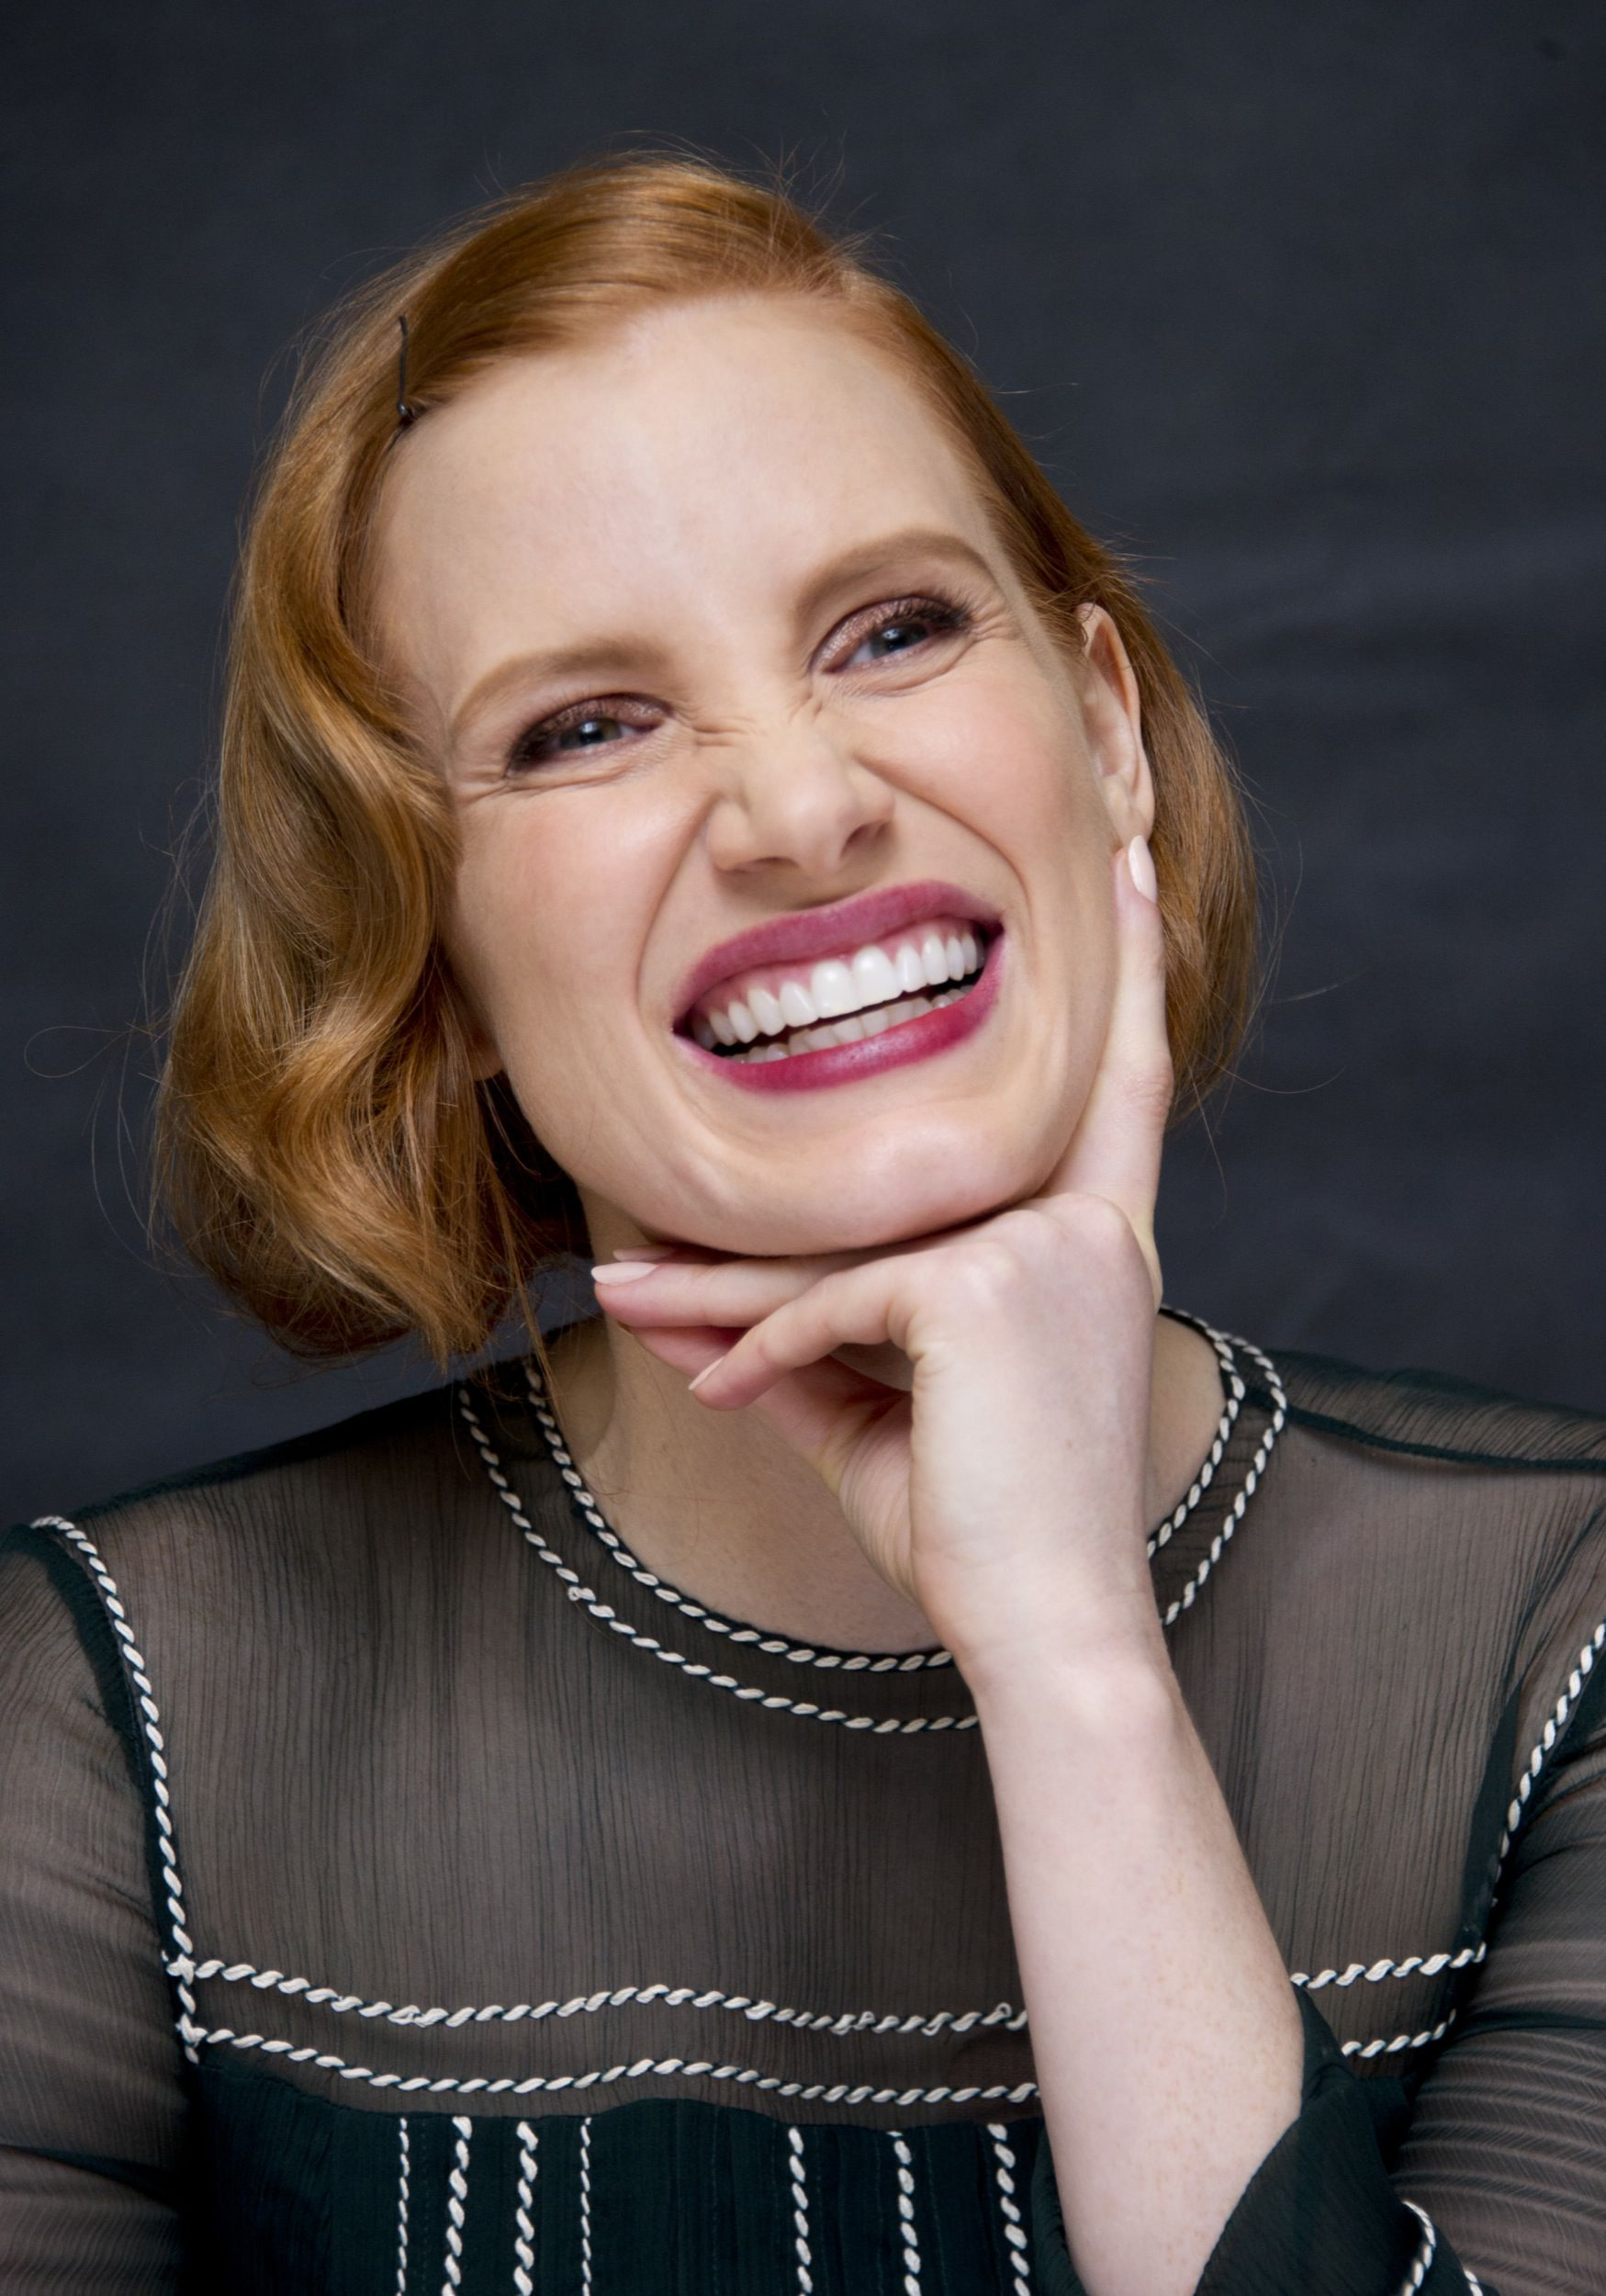 Jessica Chastain photo 1610 of 2895 pics, wallpaper ...